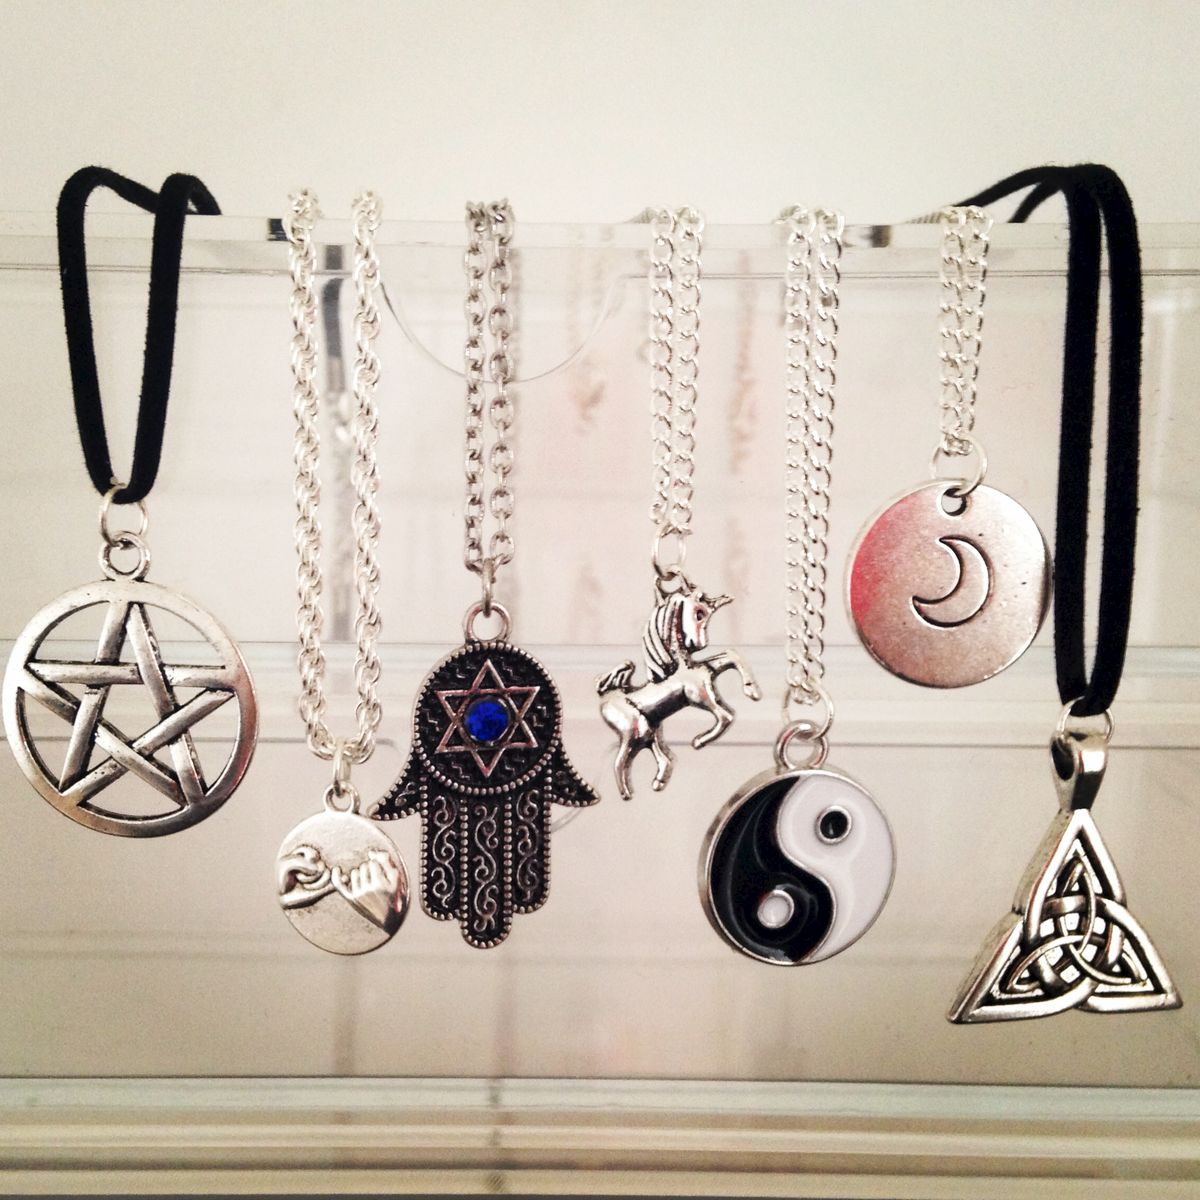 Silver Charm Necklace - ✝ ☪ ☯ ▲ Dollface London Online Jewellery Boutique ▲ ☯ ☪ ✝